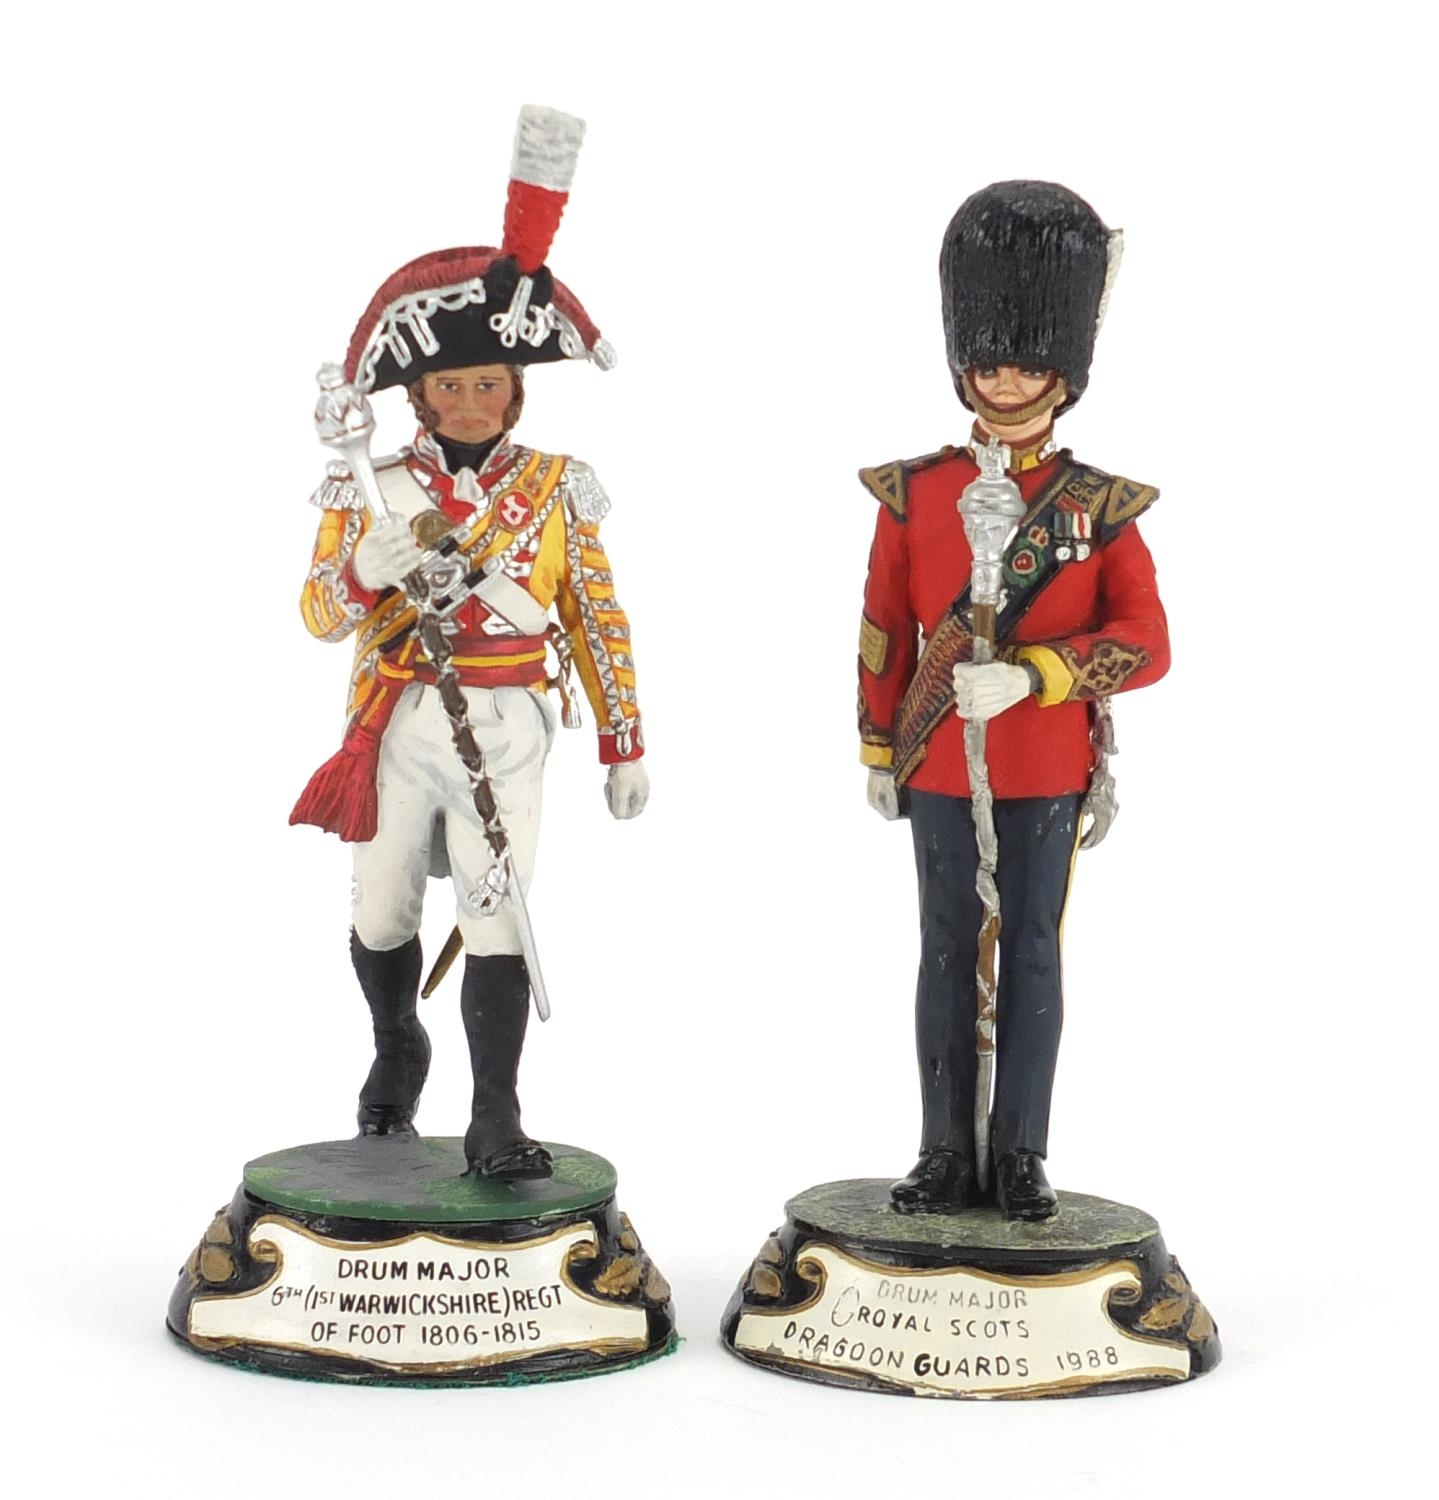 Two hand painted pewter Military figures by Charles Stadden